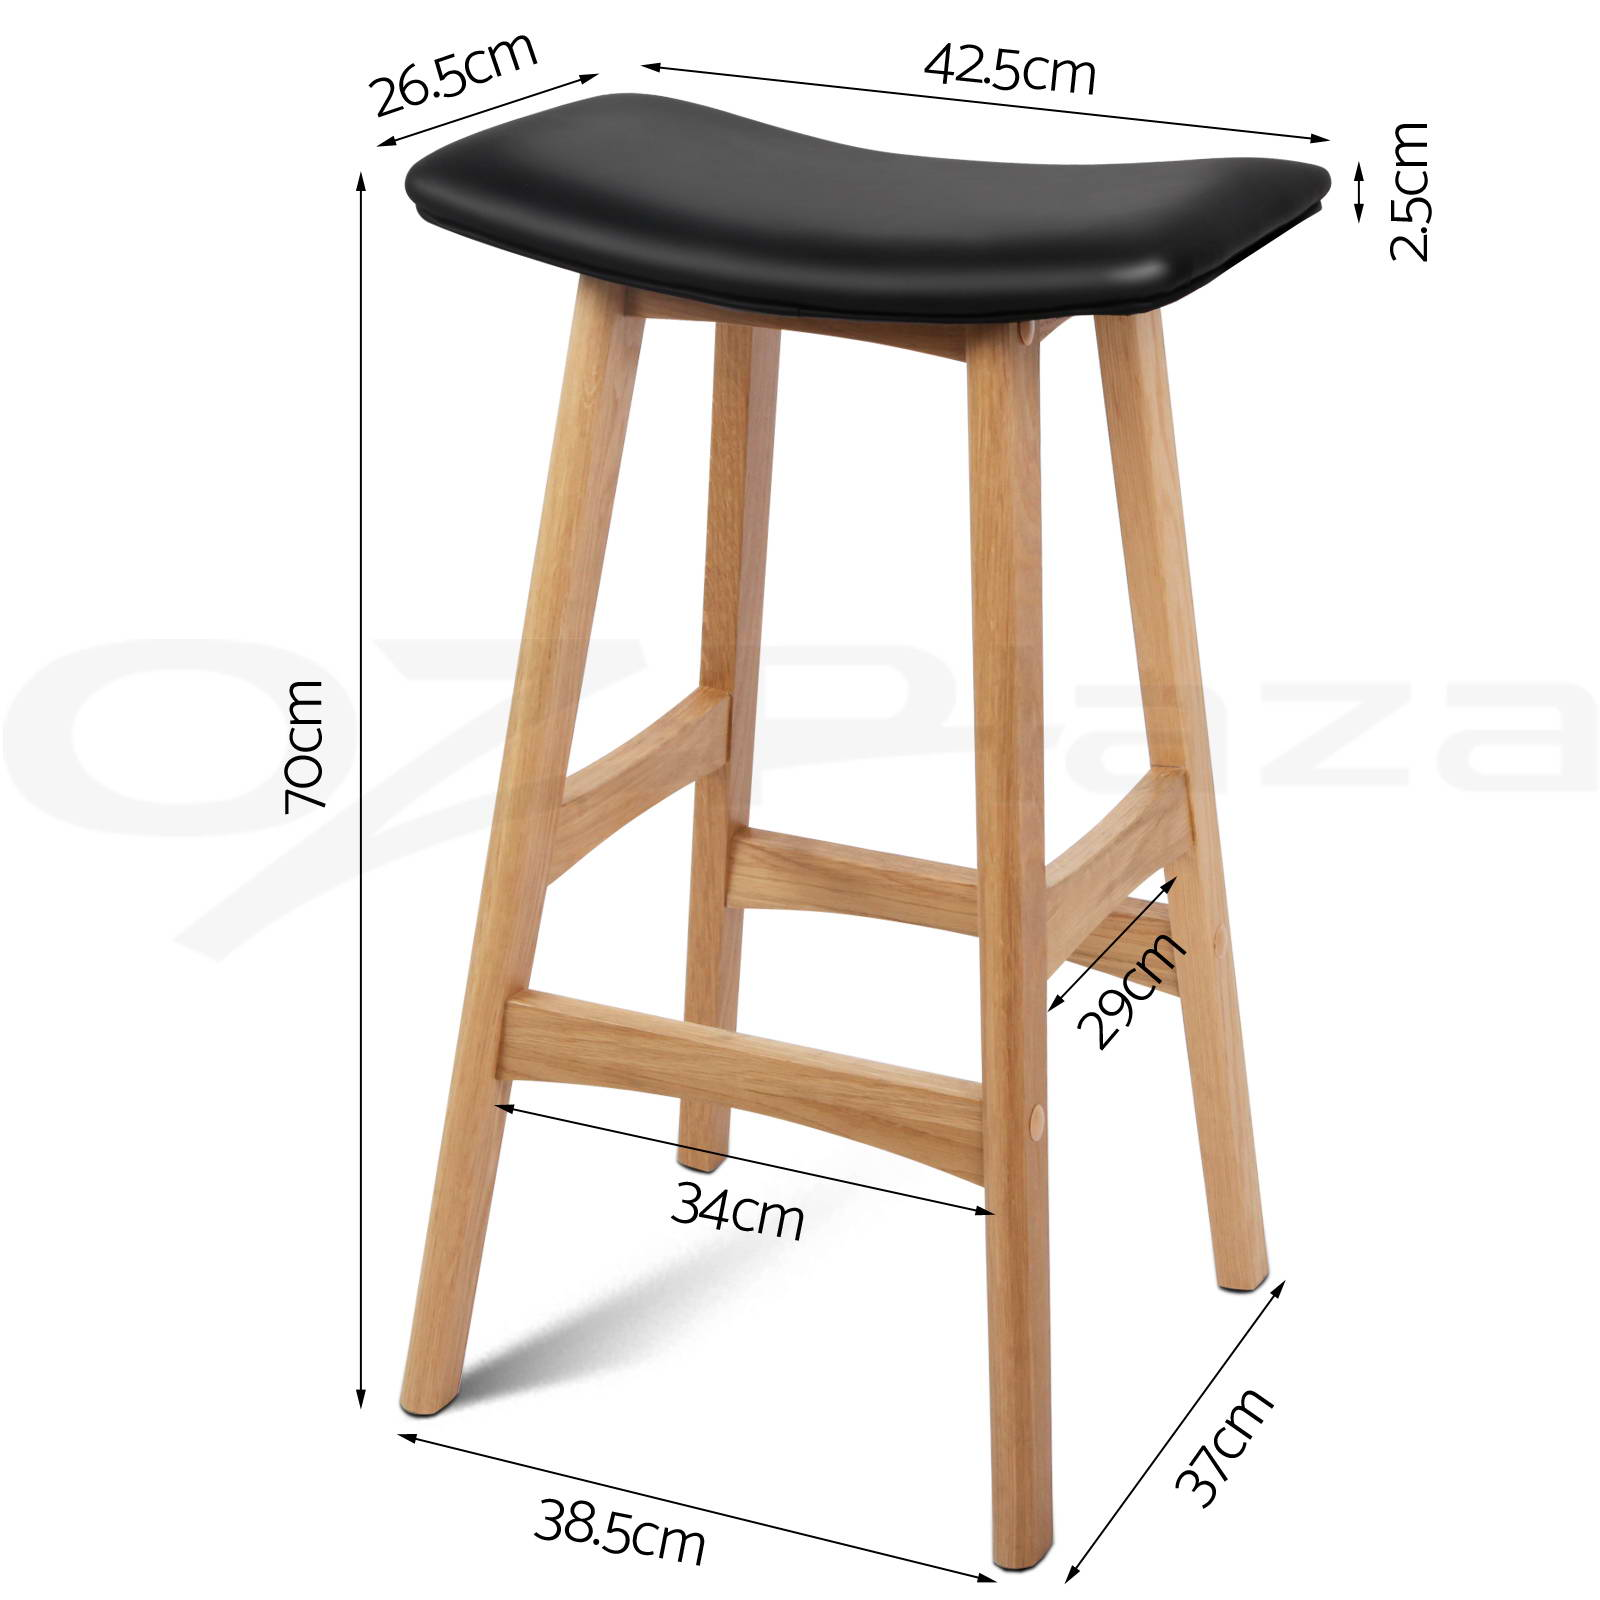 wooden bar stools with padded seats 28 images wooden  : BA F 3629 BKX2 P11 from wallpapersist.com size 1600 x 1600 jpeg 159kB